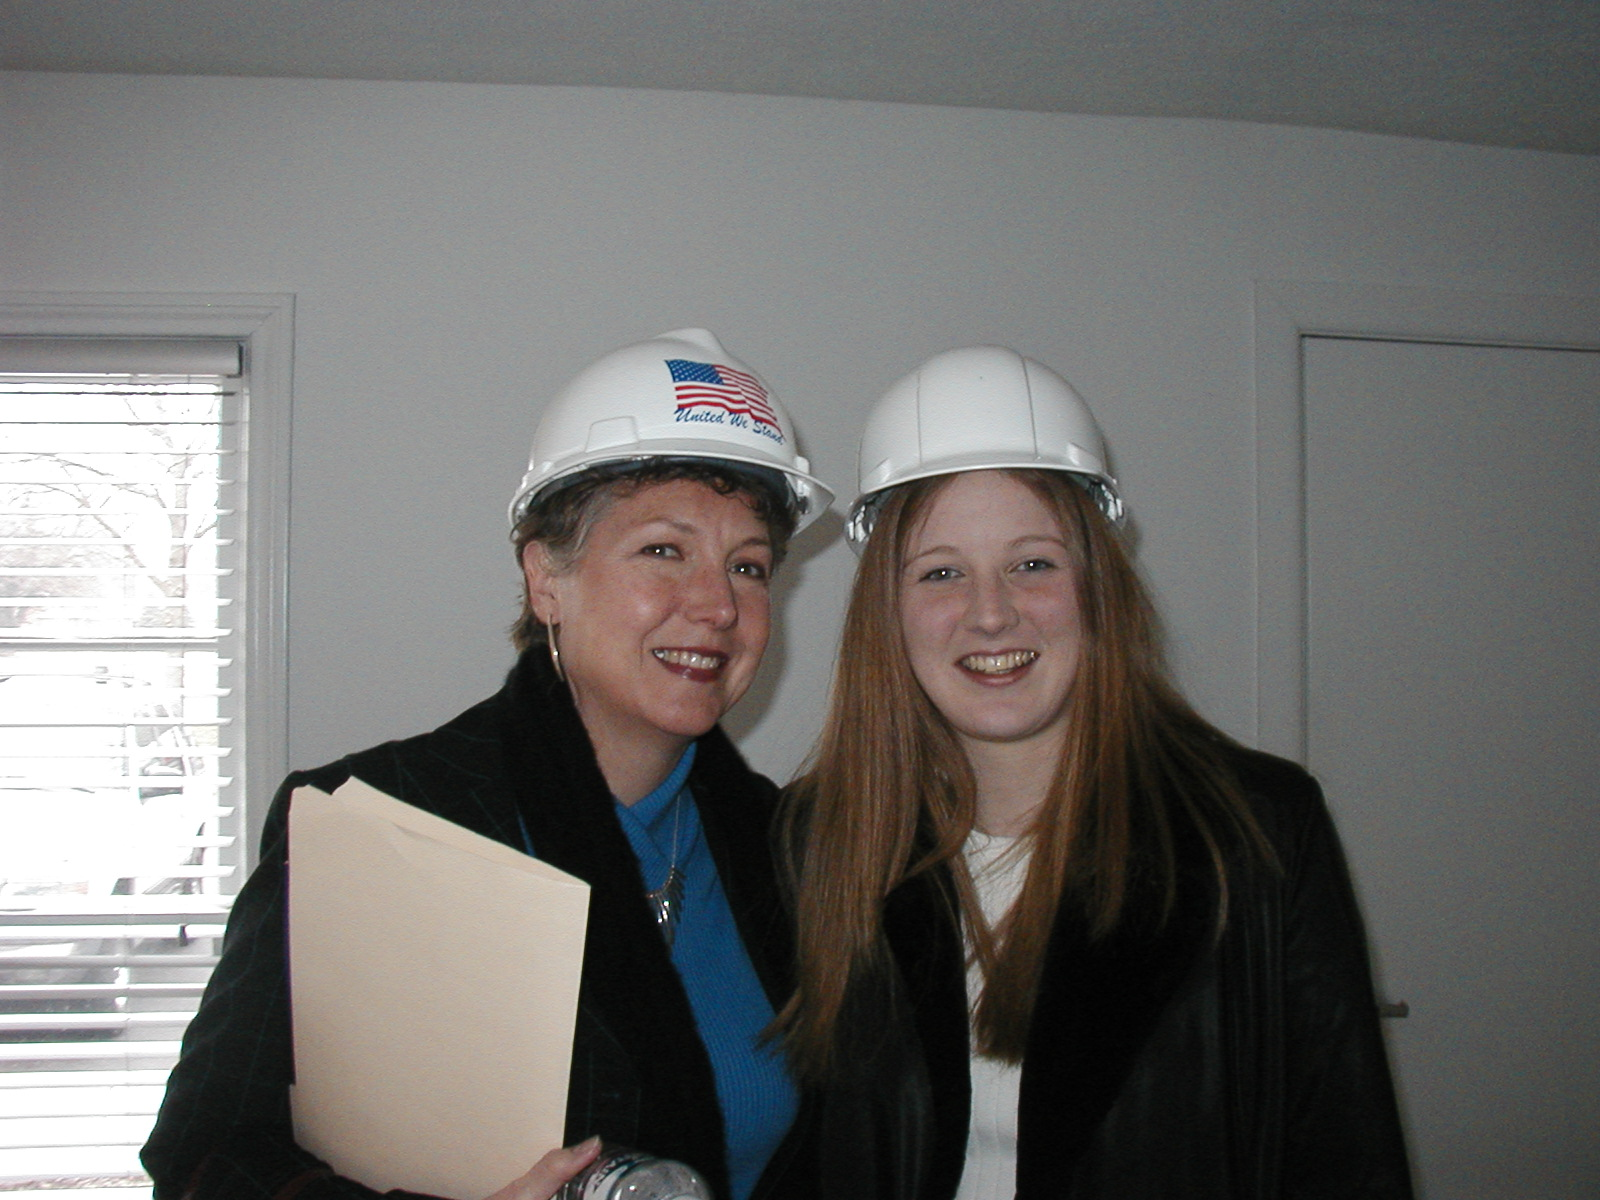 Janet mentored me on job from paperwork to job site safety.